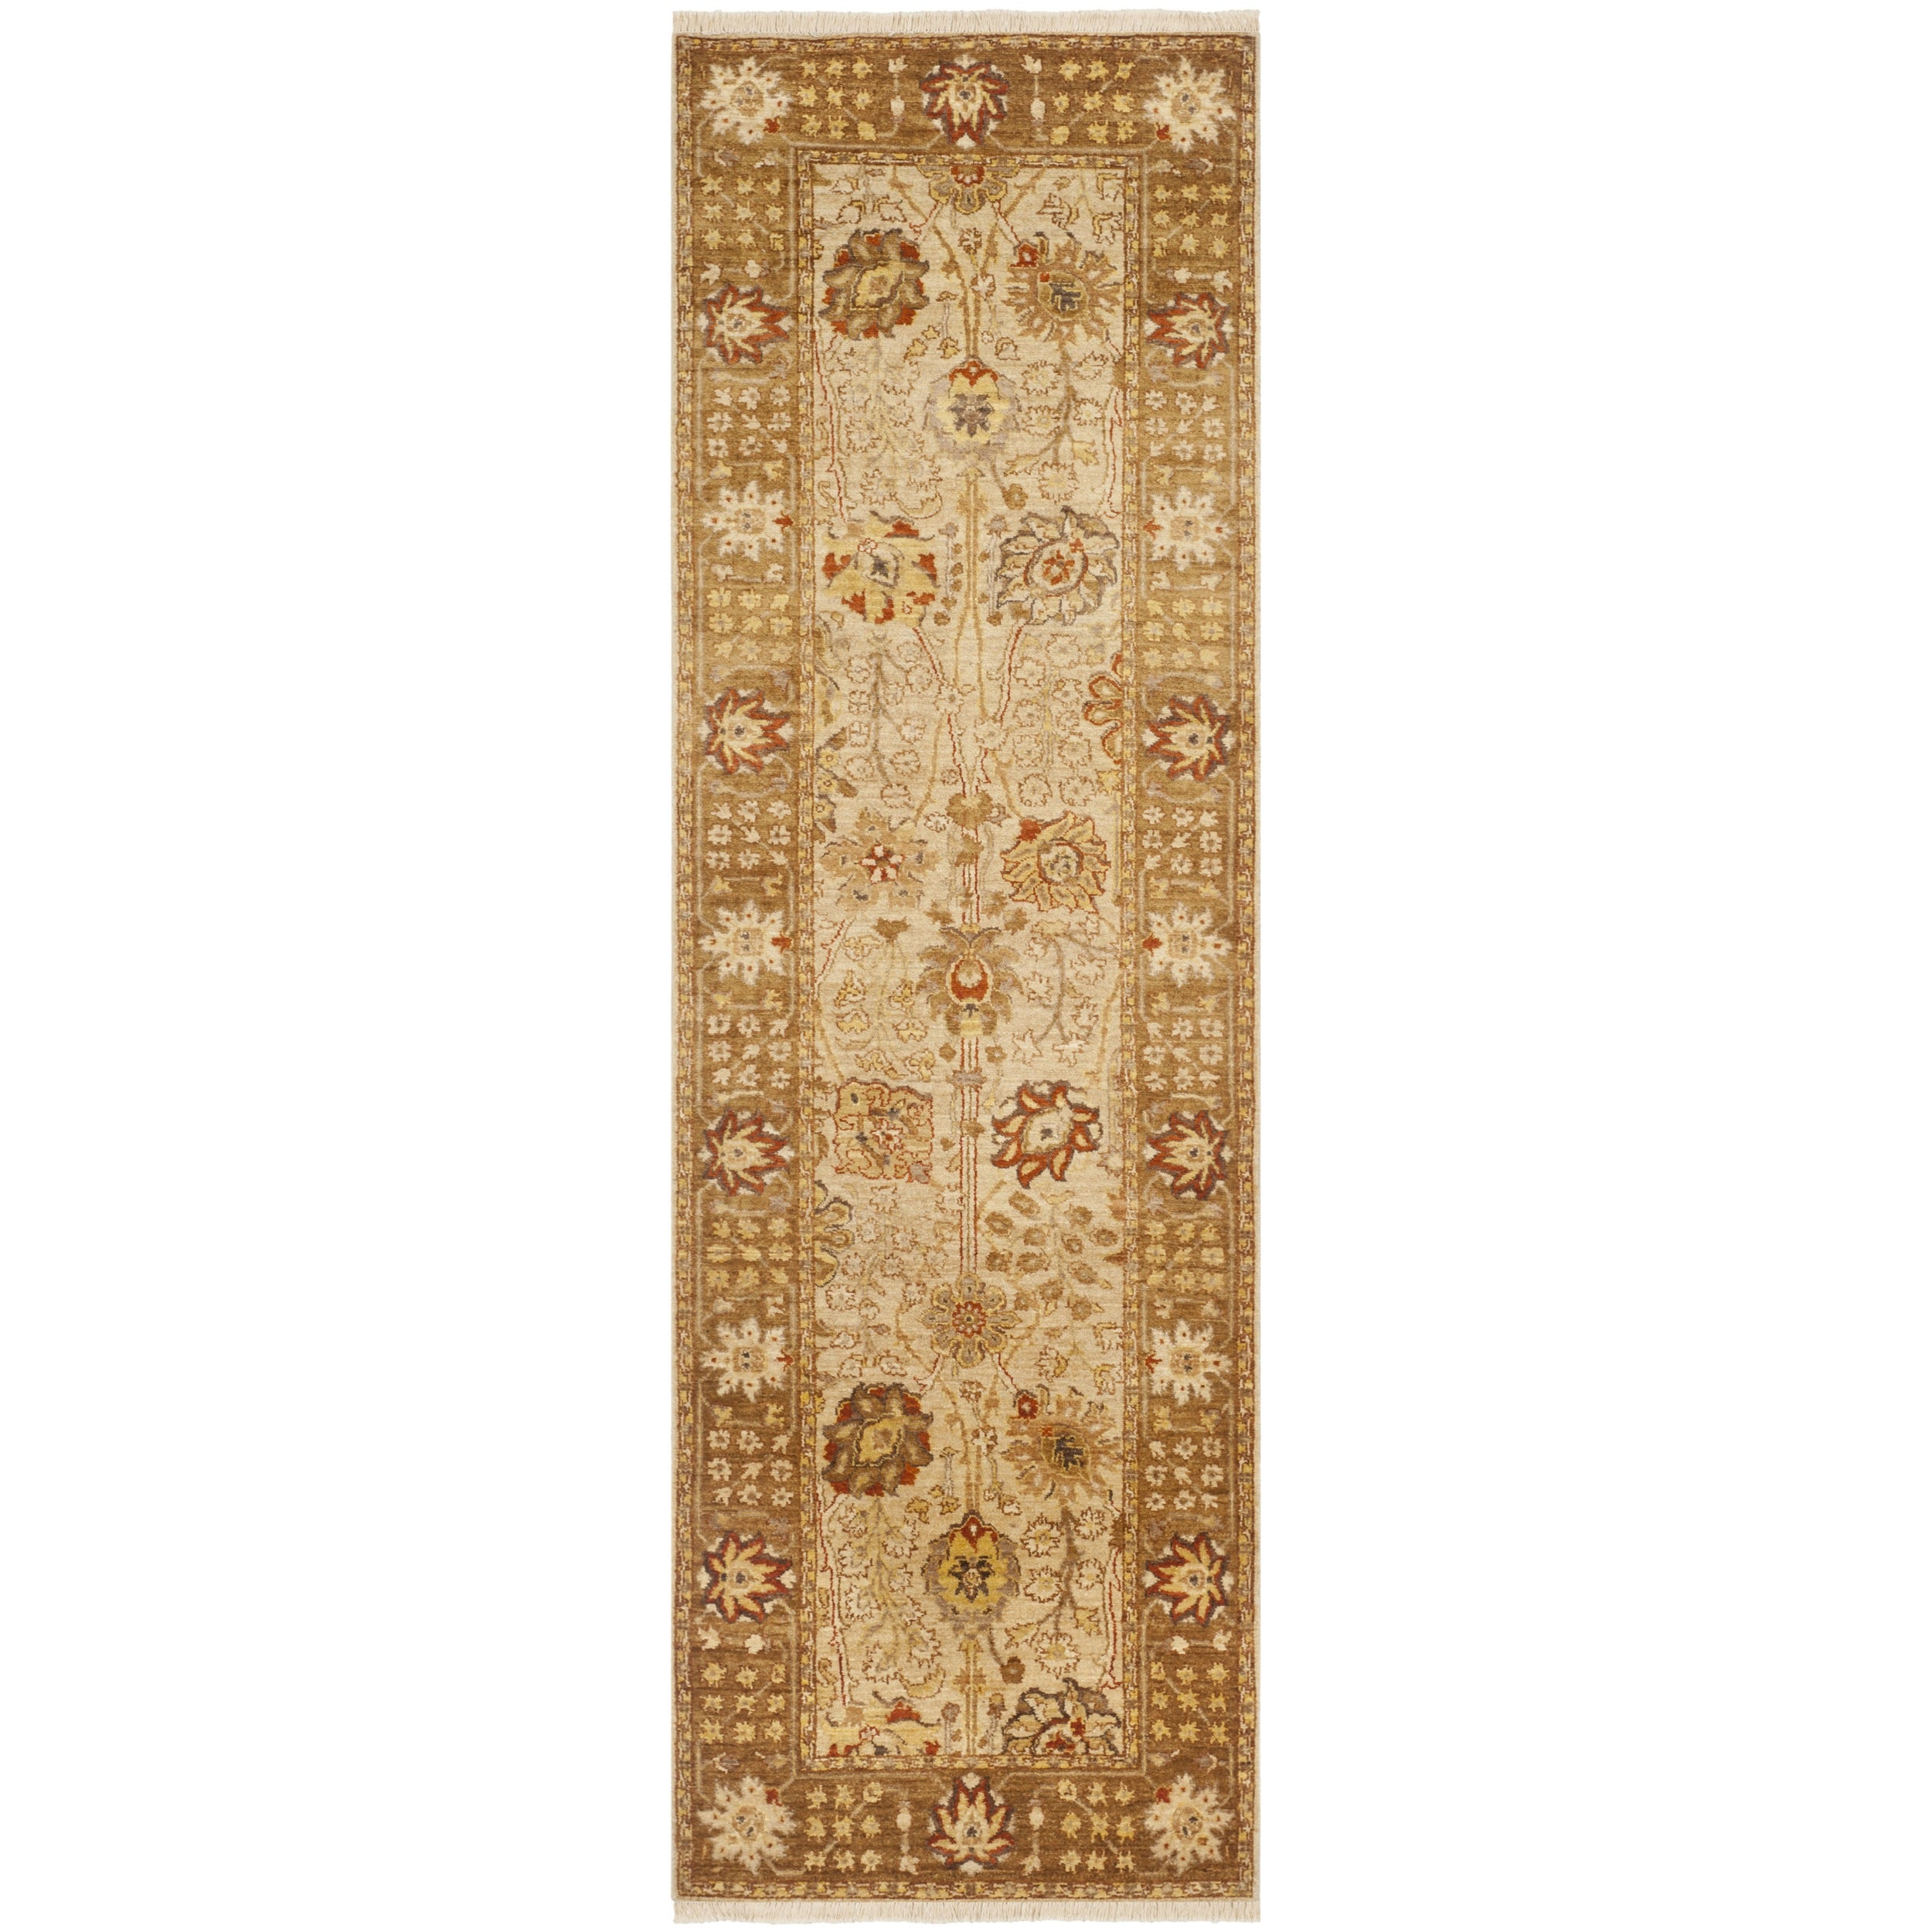 Safavieh Hand-knotted Peshawar Vegetable Dye Ivory/ Gold Wool Rug (3' x 18')